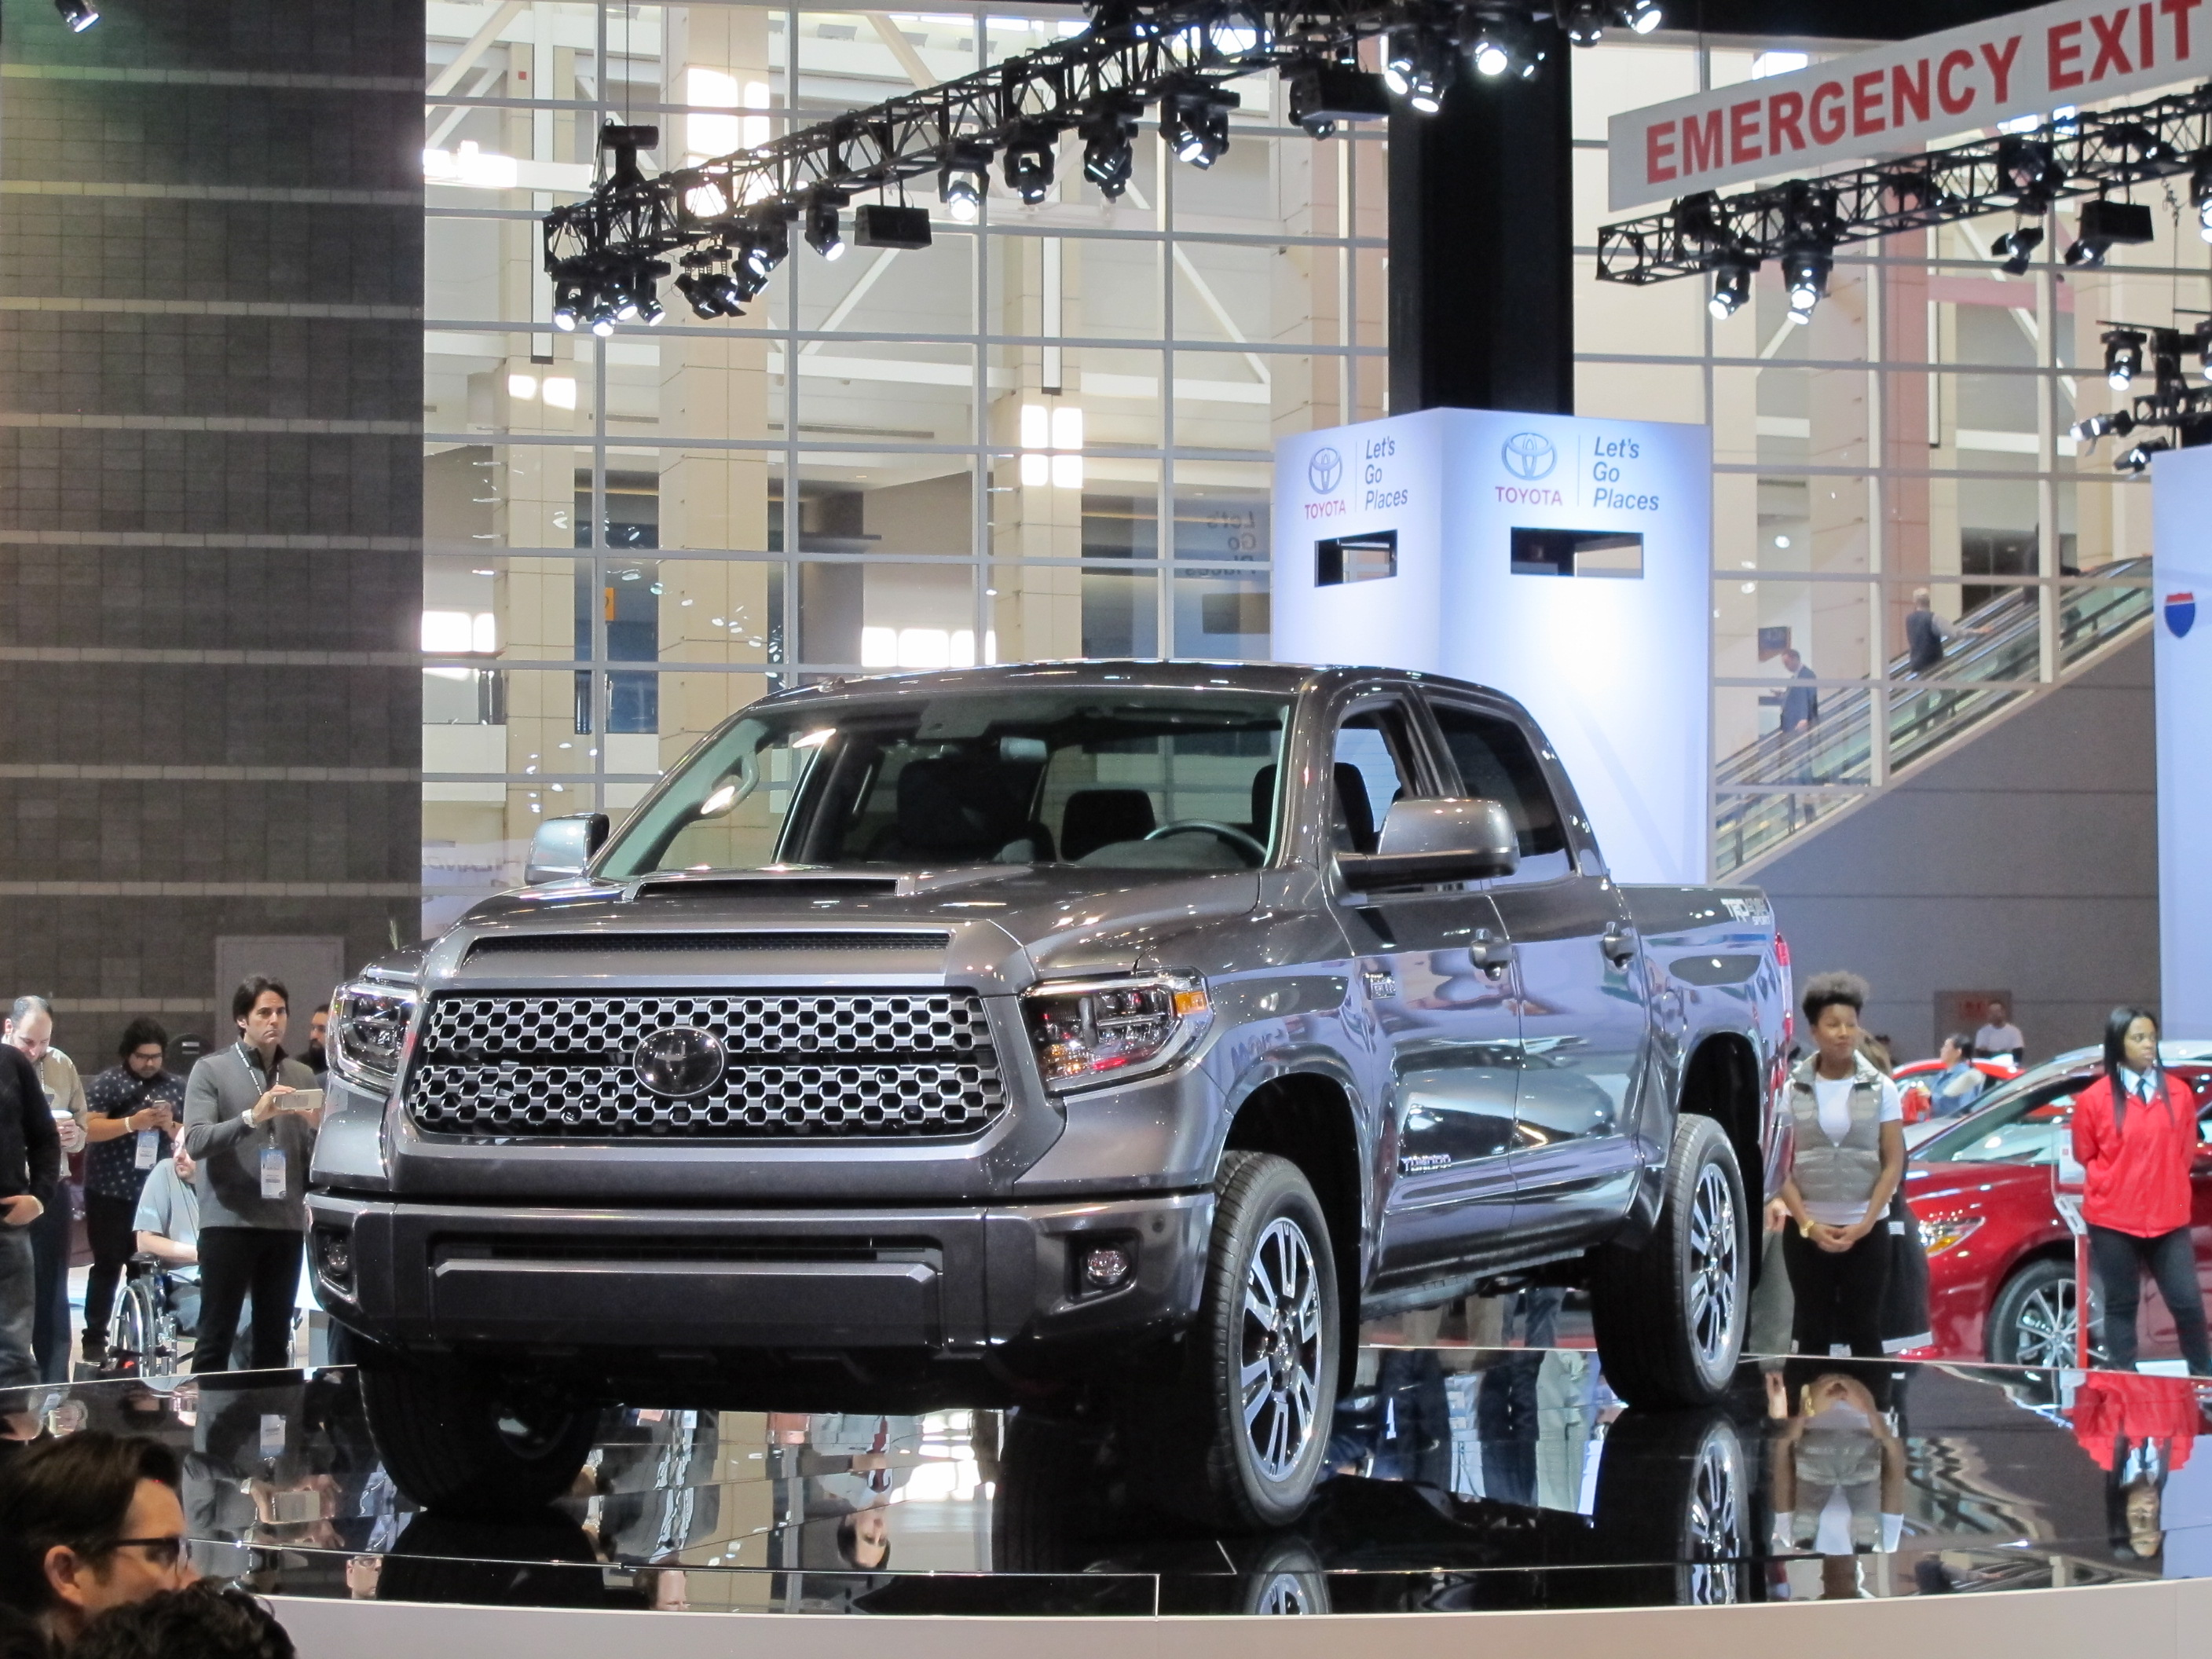 Toyota Sequoia Tundra Get TRD Sport Trim At Chicago Auto Show - Toyota show car